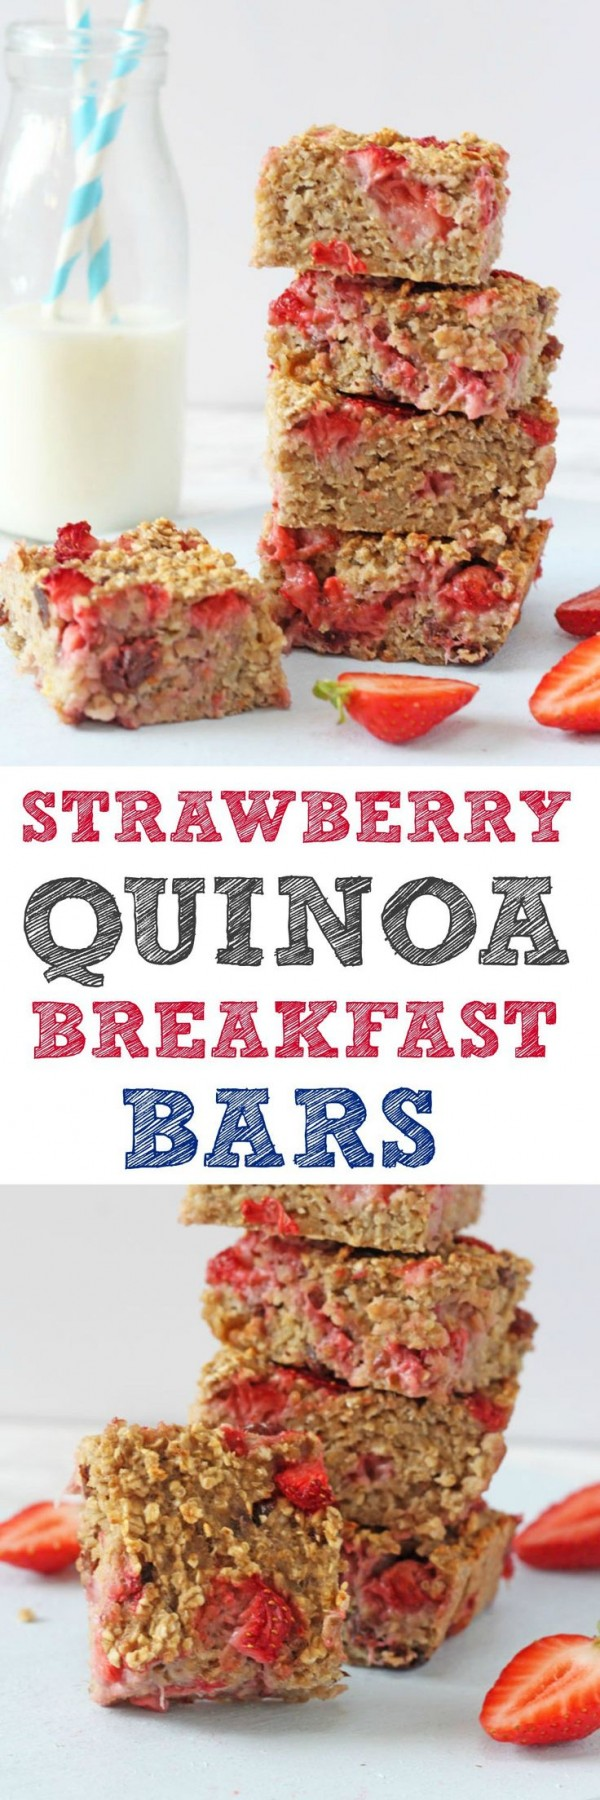 Get the recipe Strawberry Quinoa Breakfast Bars @recipes_to_go